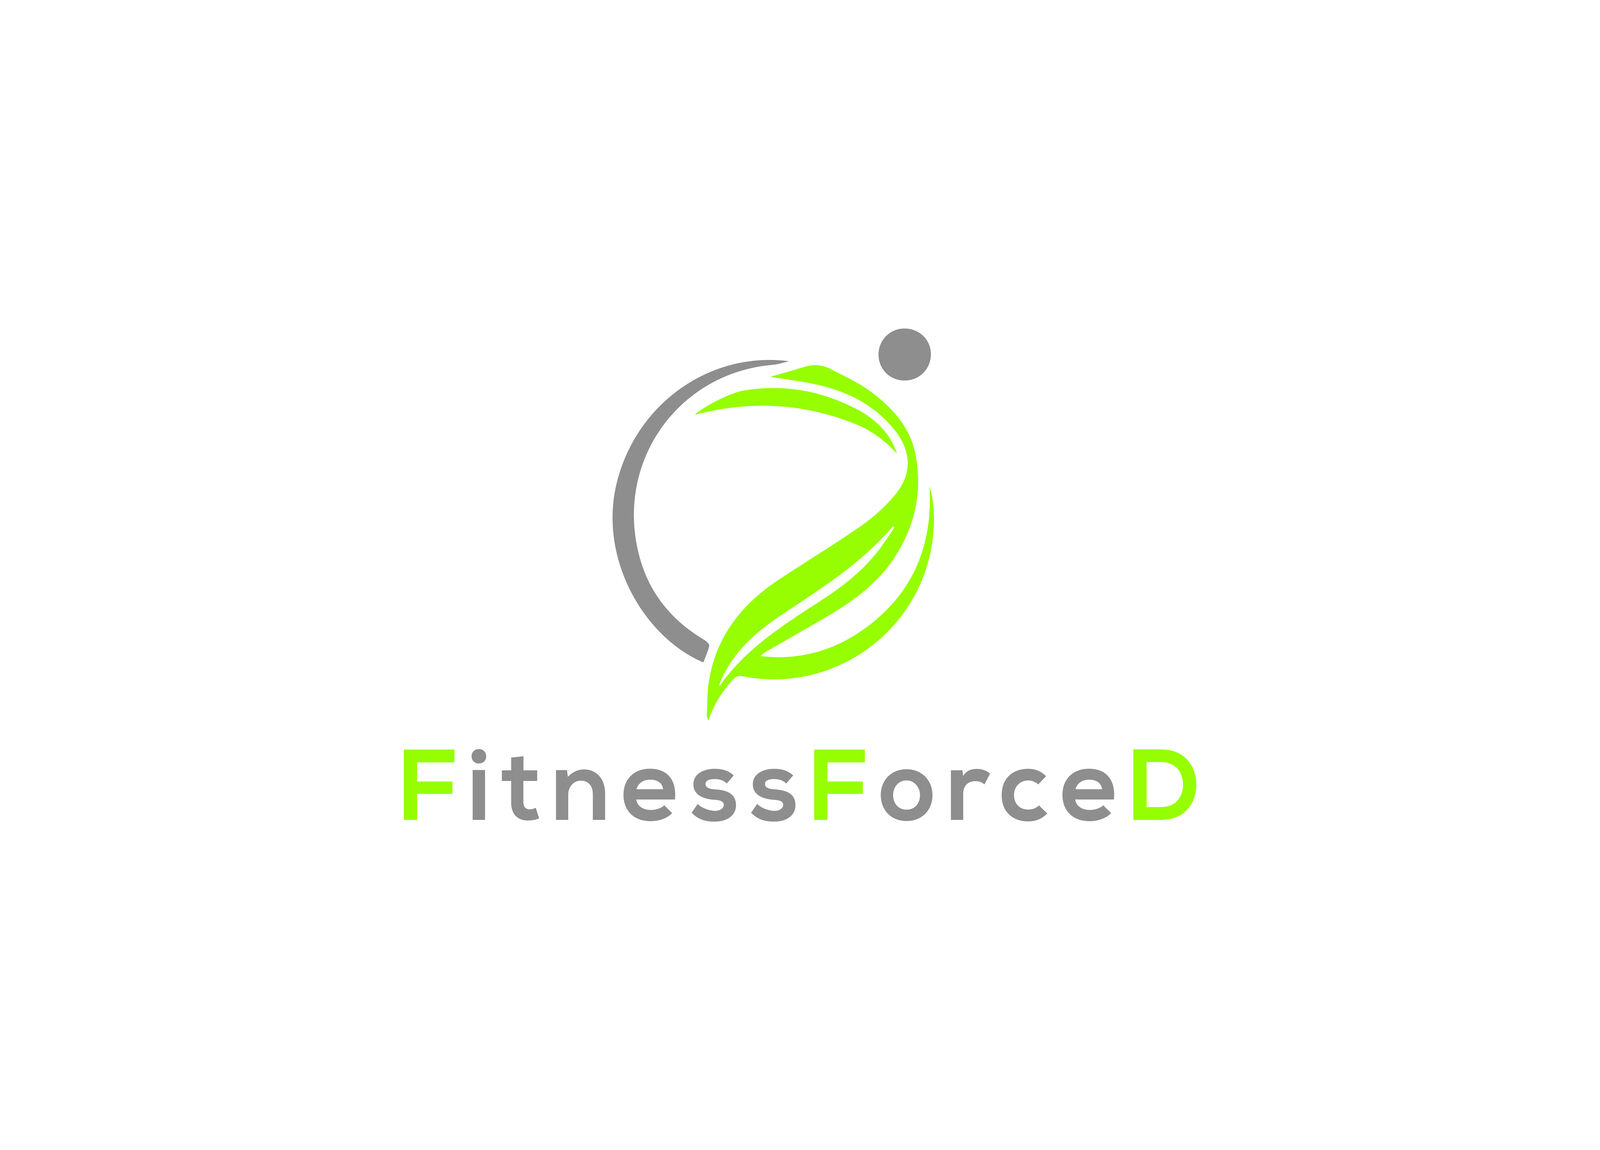 FitnessForced